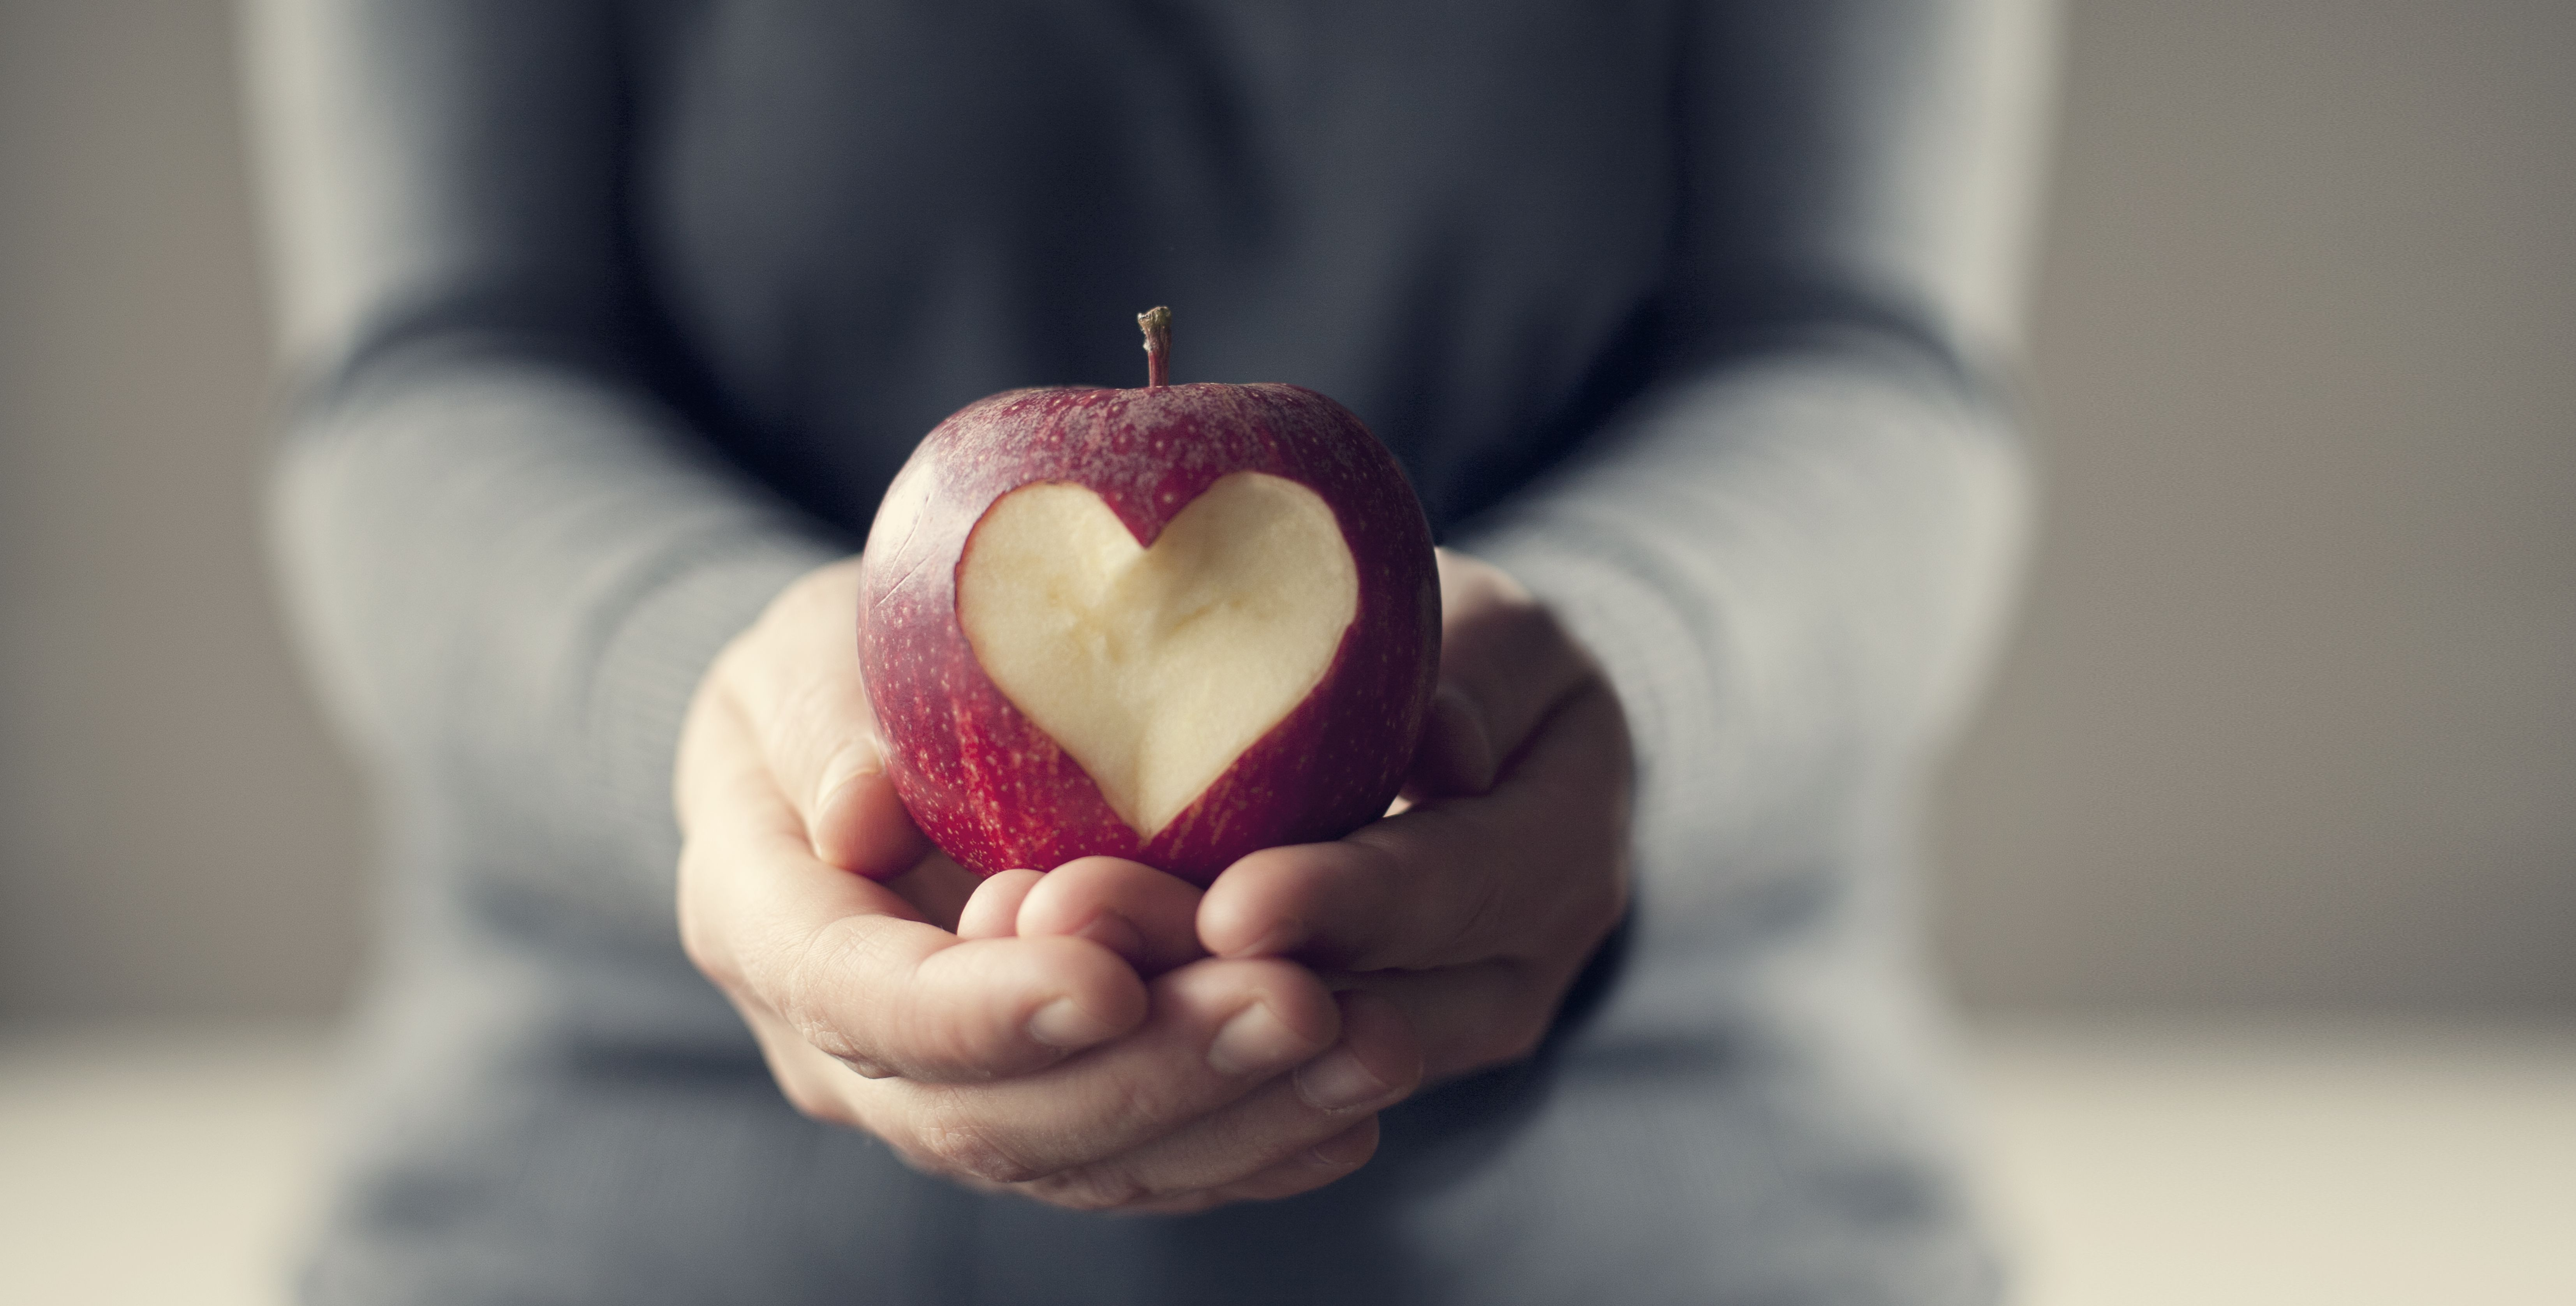 Heart Health Online Test - Calculate the Age of Your Heart